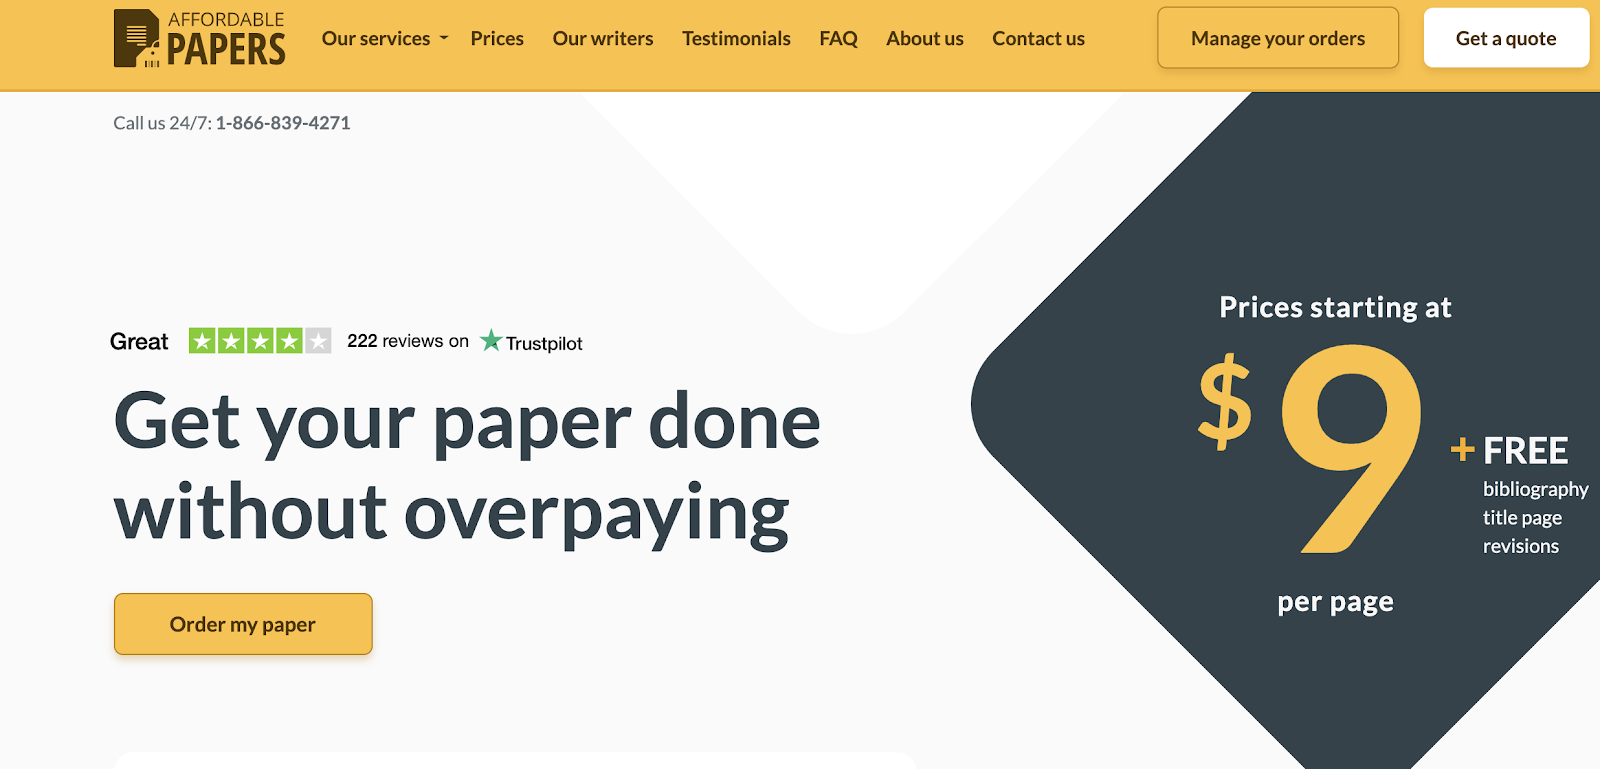 AffordablePapers com review - Top Results with a Reasonable